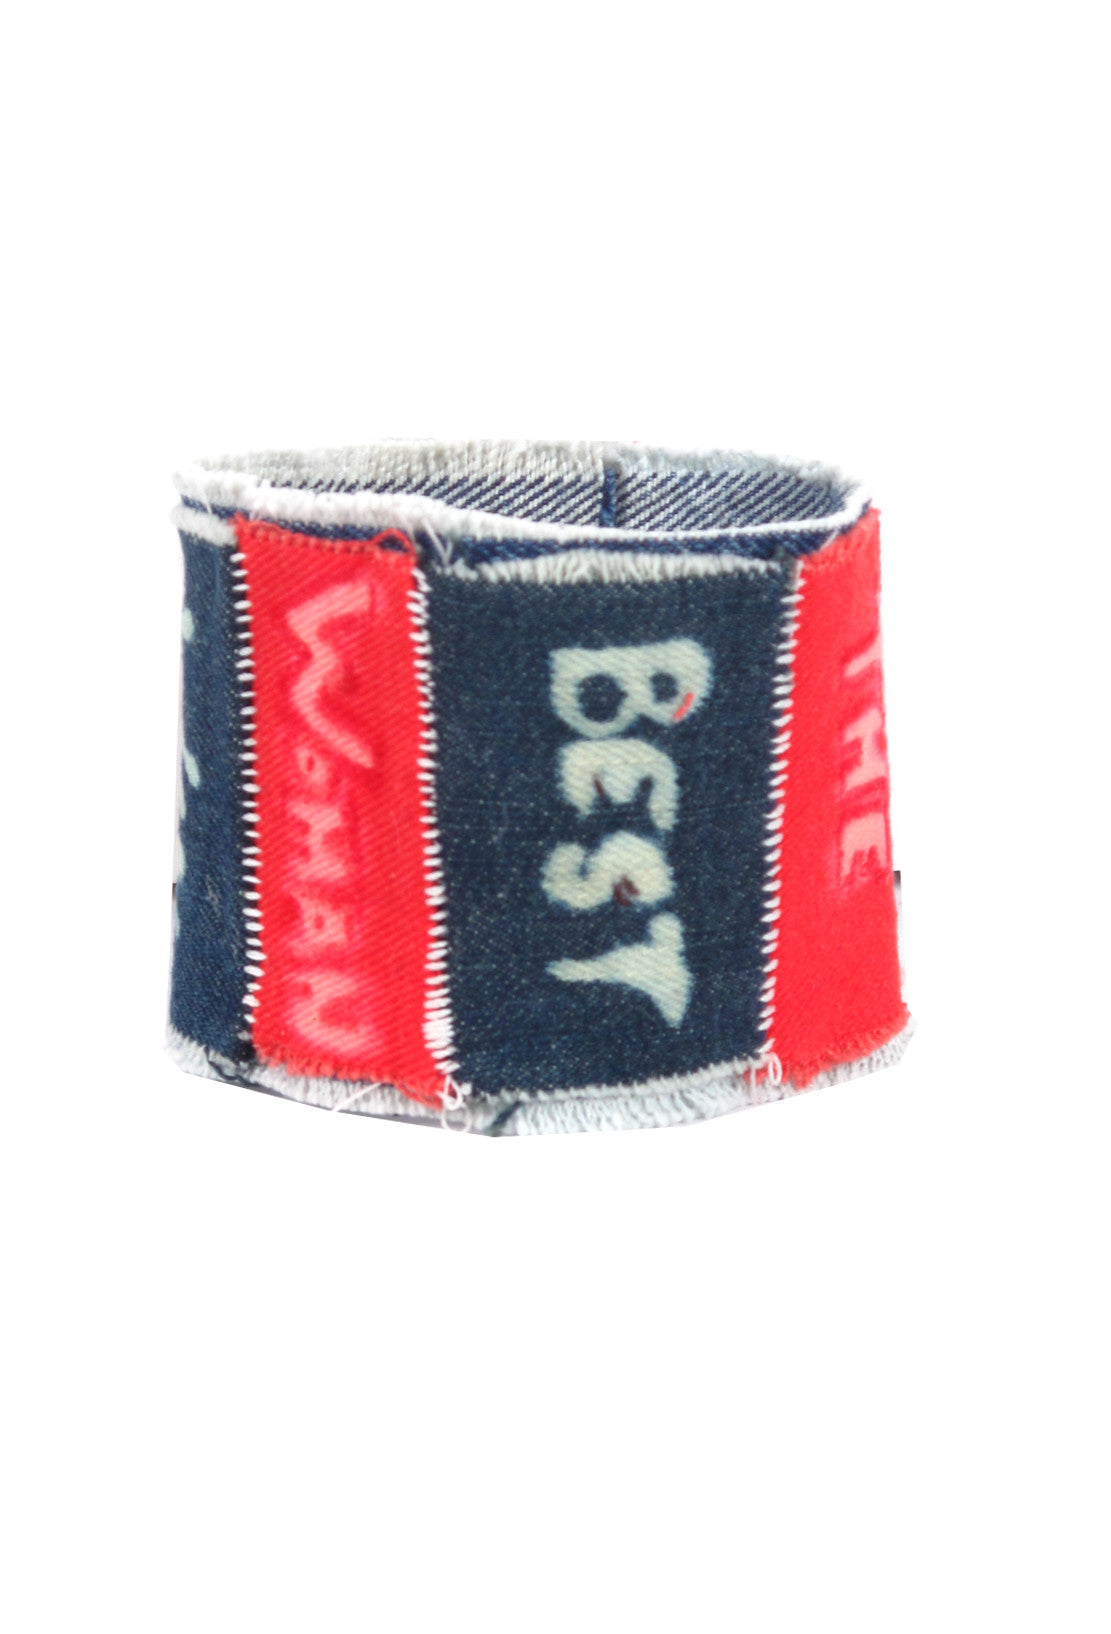 PHRASE PATCH DENIM CUFF- AVAILABLE FOR IMMEDIATE DELIVERY